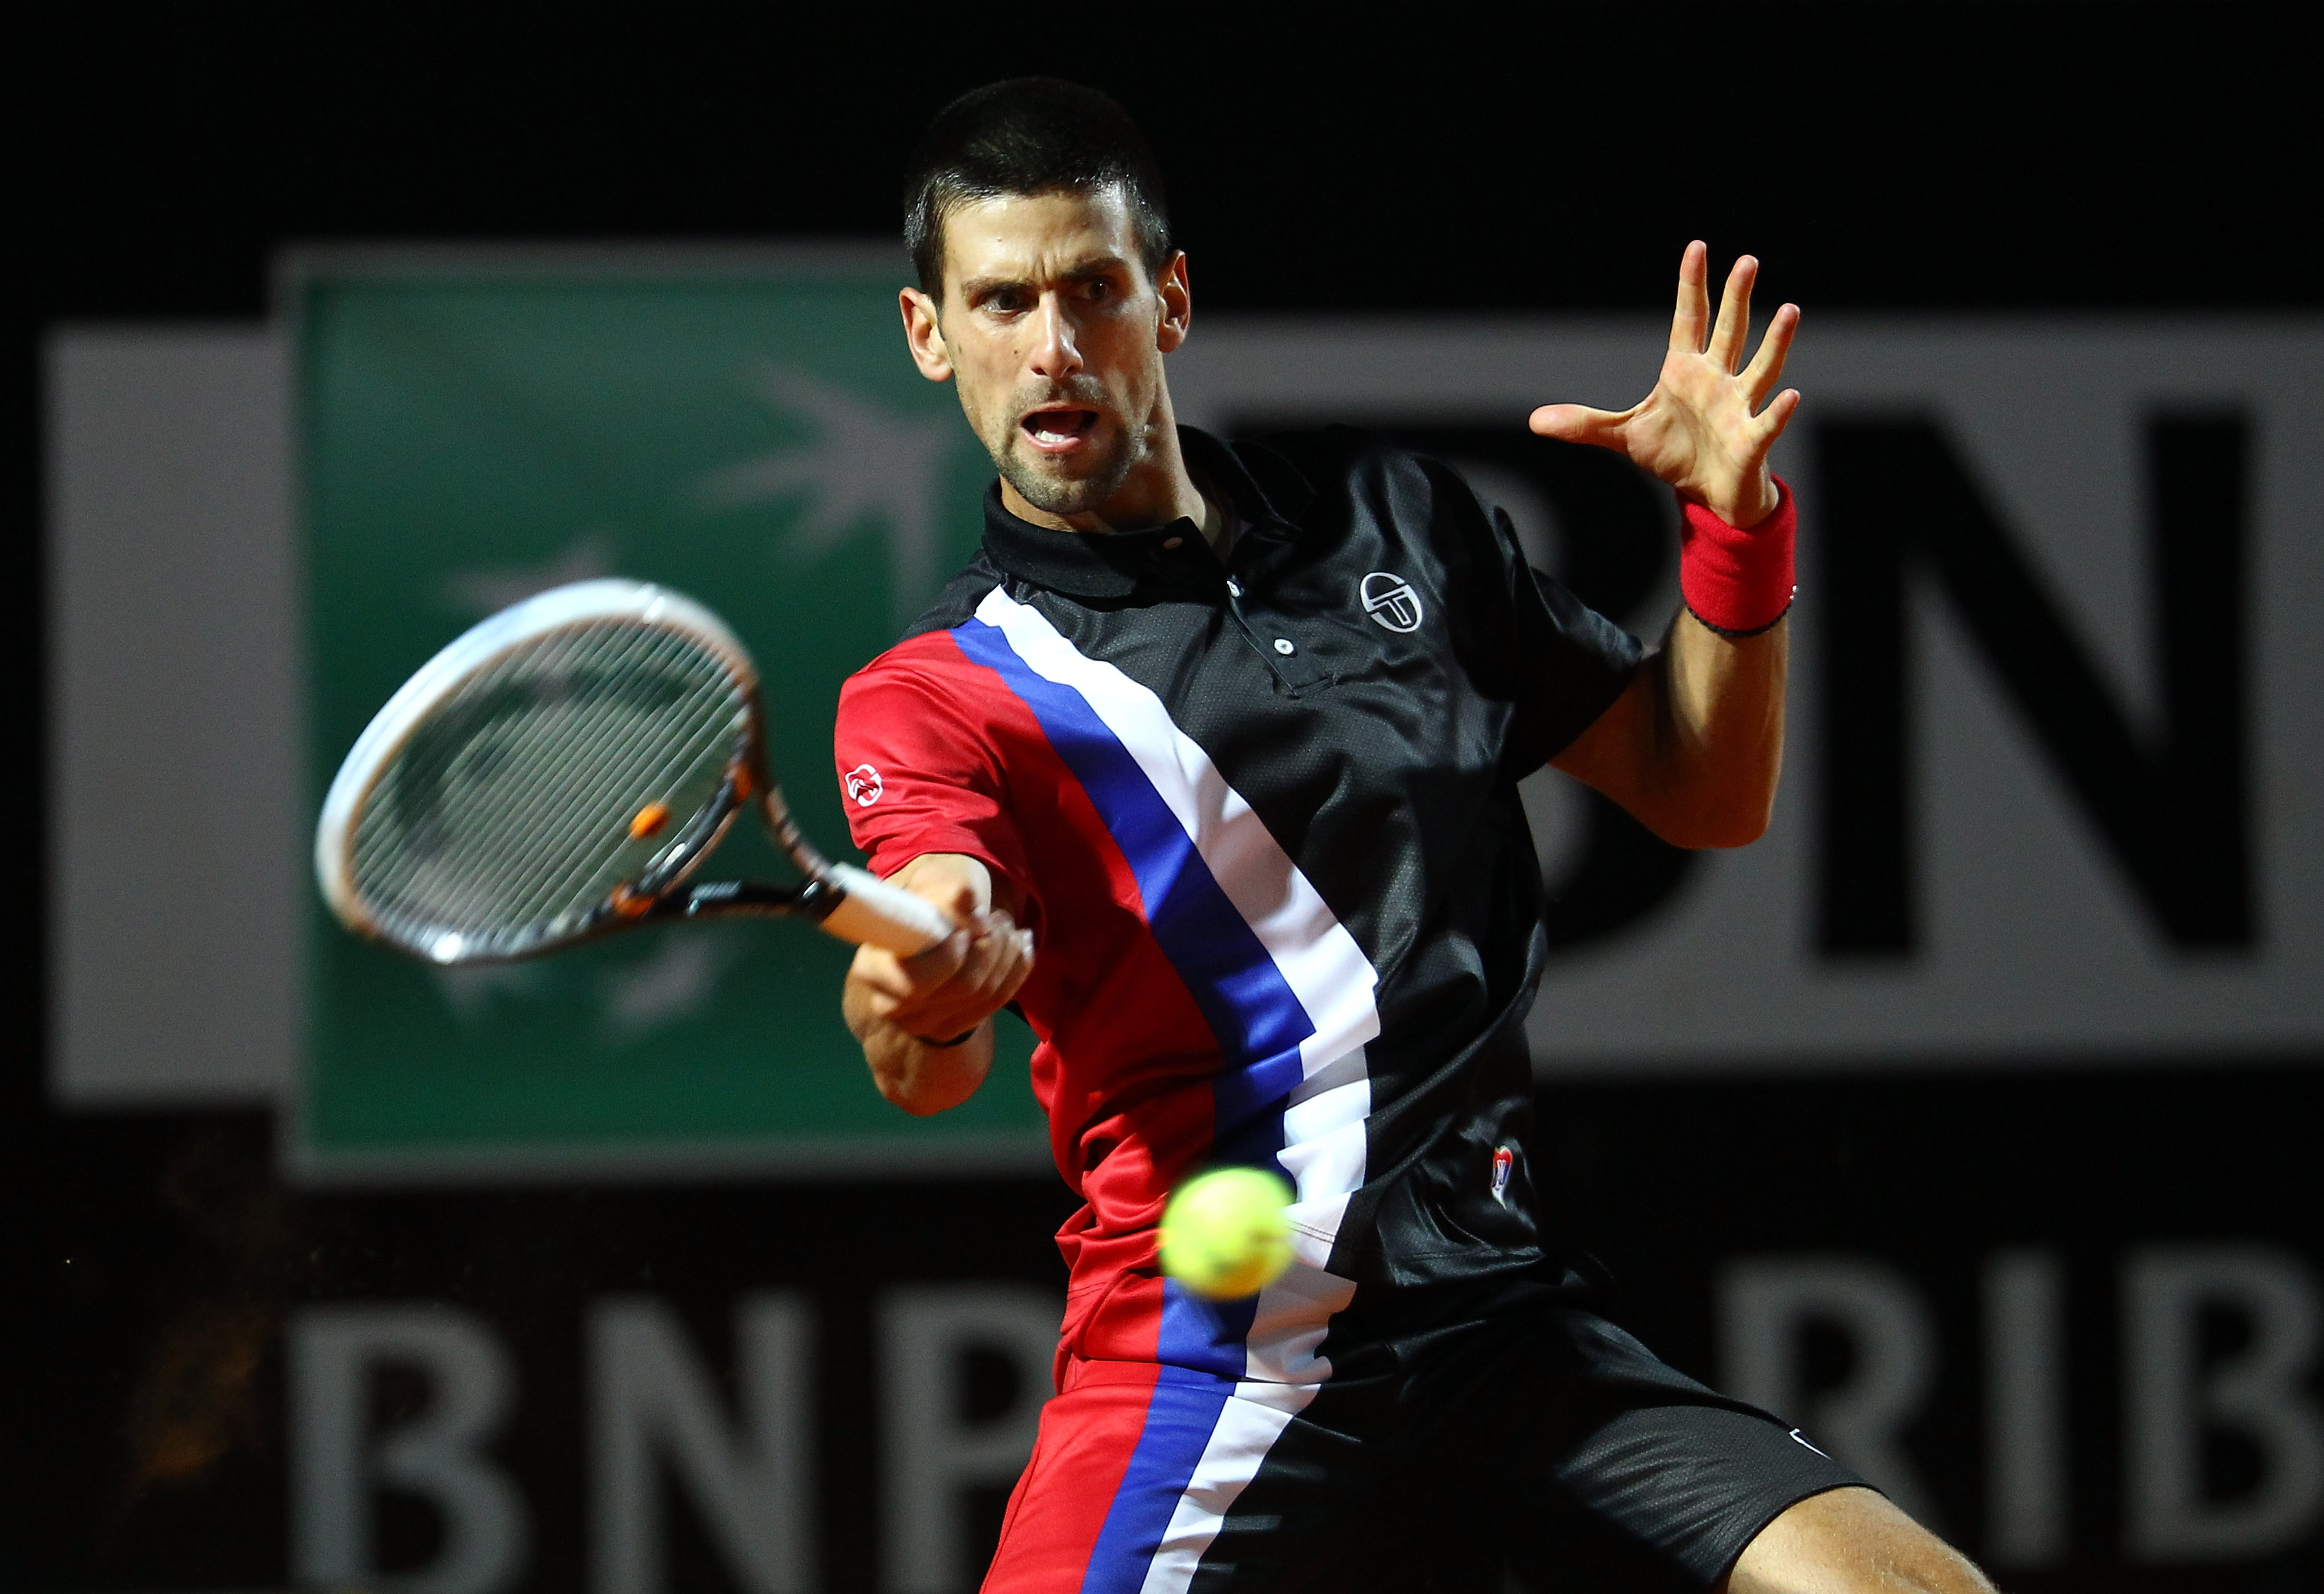 Djokovic went for a rare striped top and bottom in Rome.